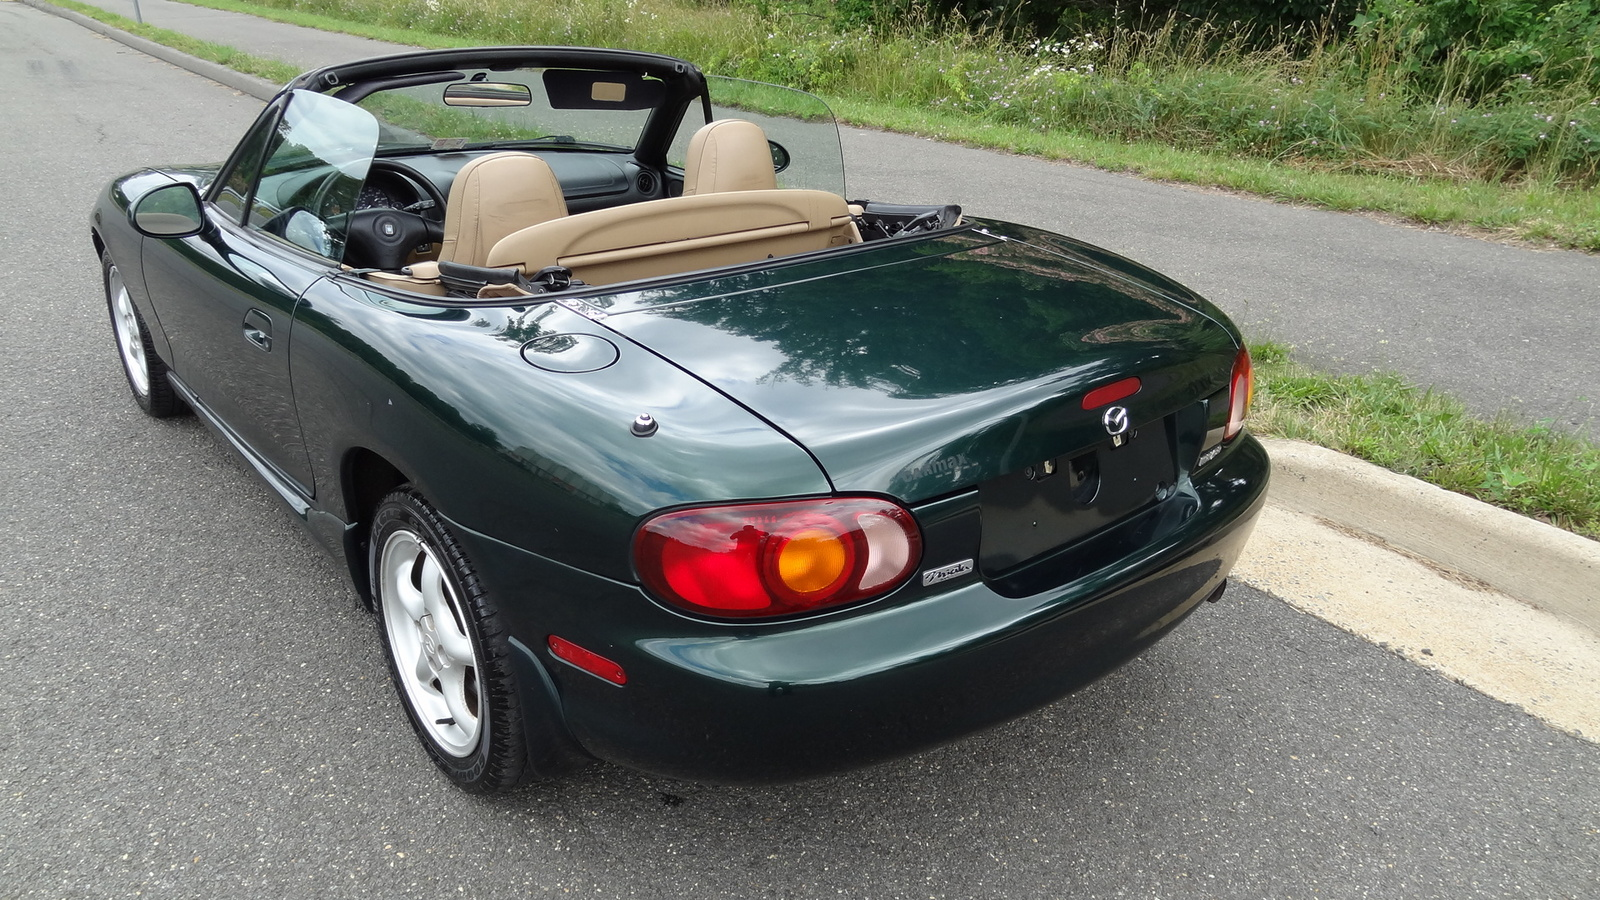 1990 1992 1994 1996 1998 2000 Mazda Miata Mx5 Workshop